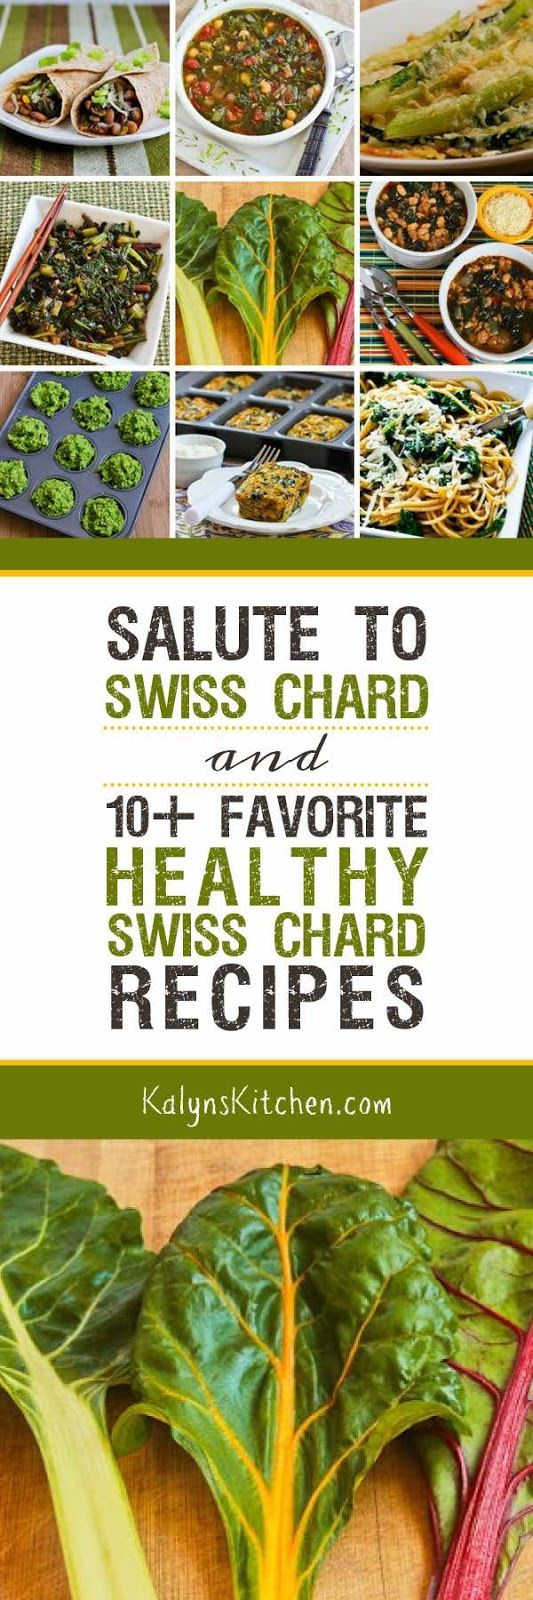 Swiss Chard is delicious and easy to grow and here are my 10+ Favorite Healthy Swiss Chard Recipes! [found on KalynsKitchen.com]